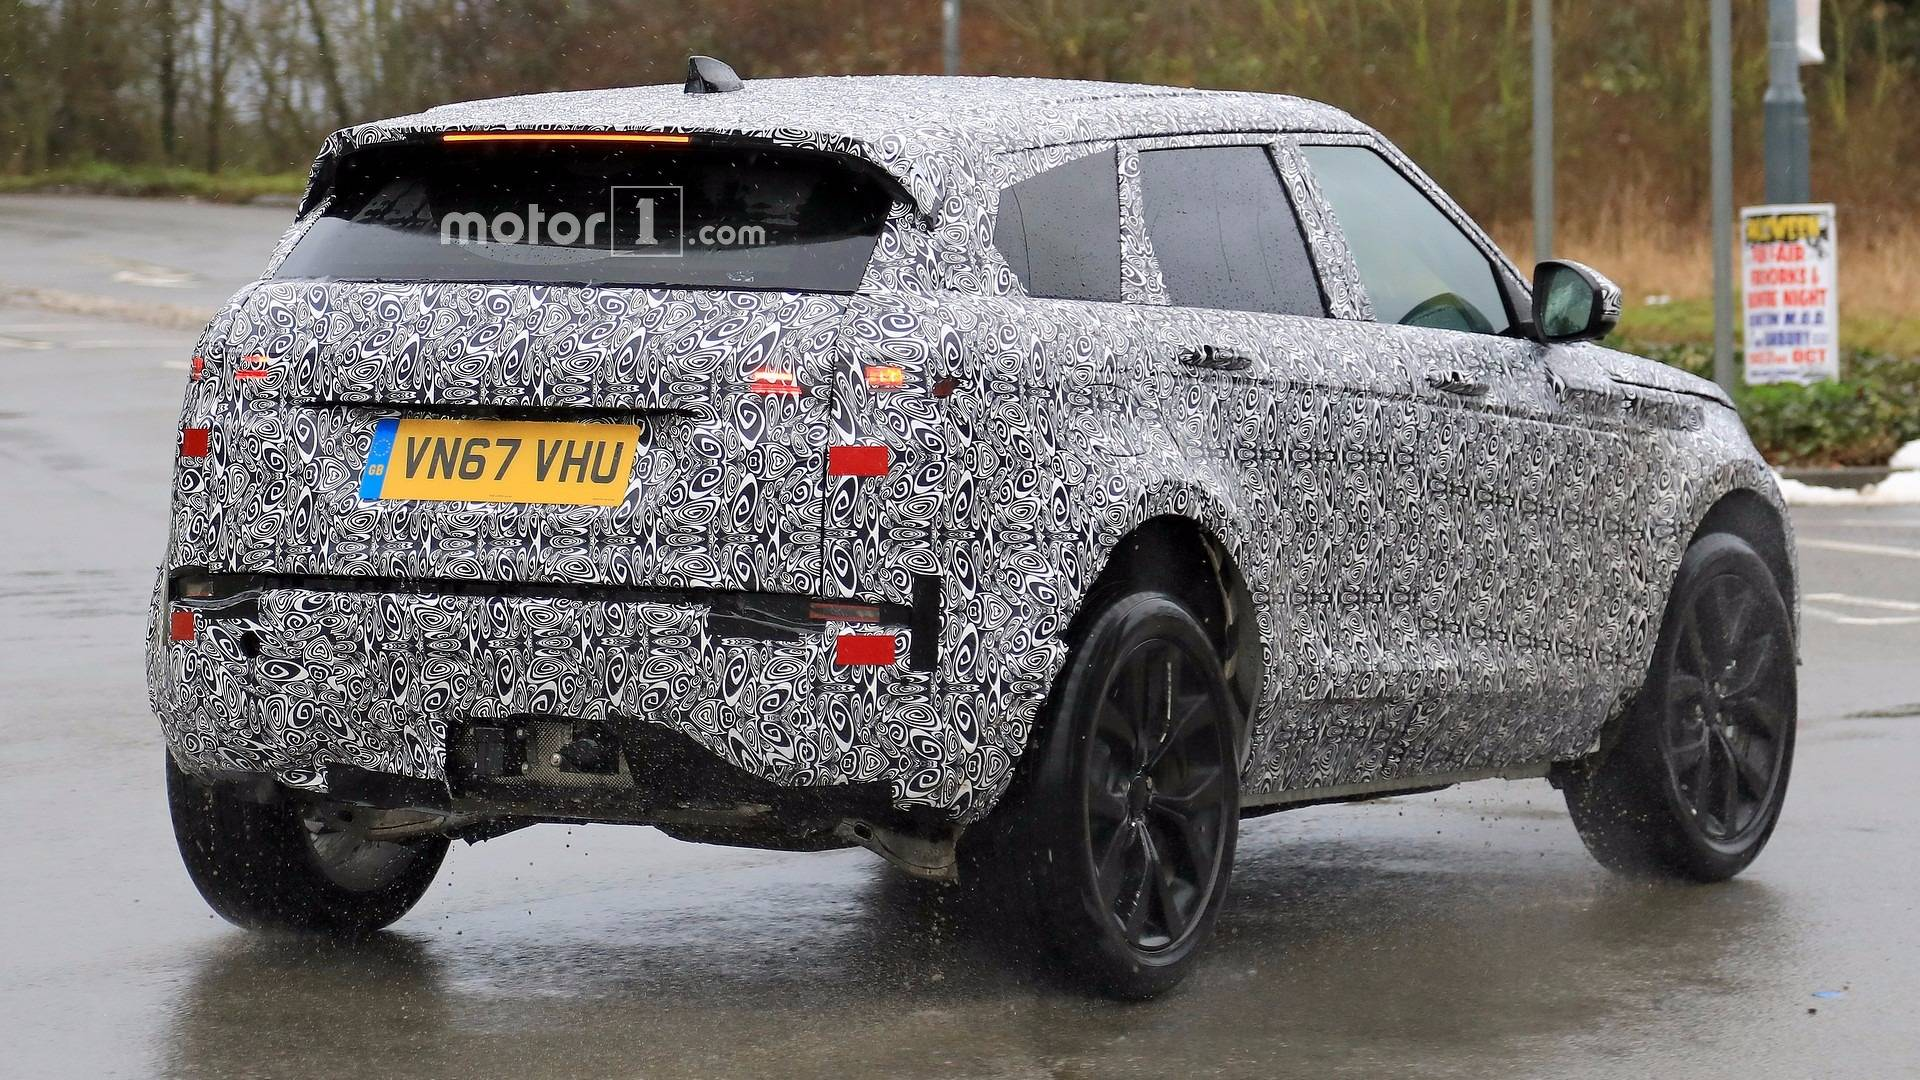 2019 Range Rover Evoque Spied Hiding Most Its Production Body